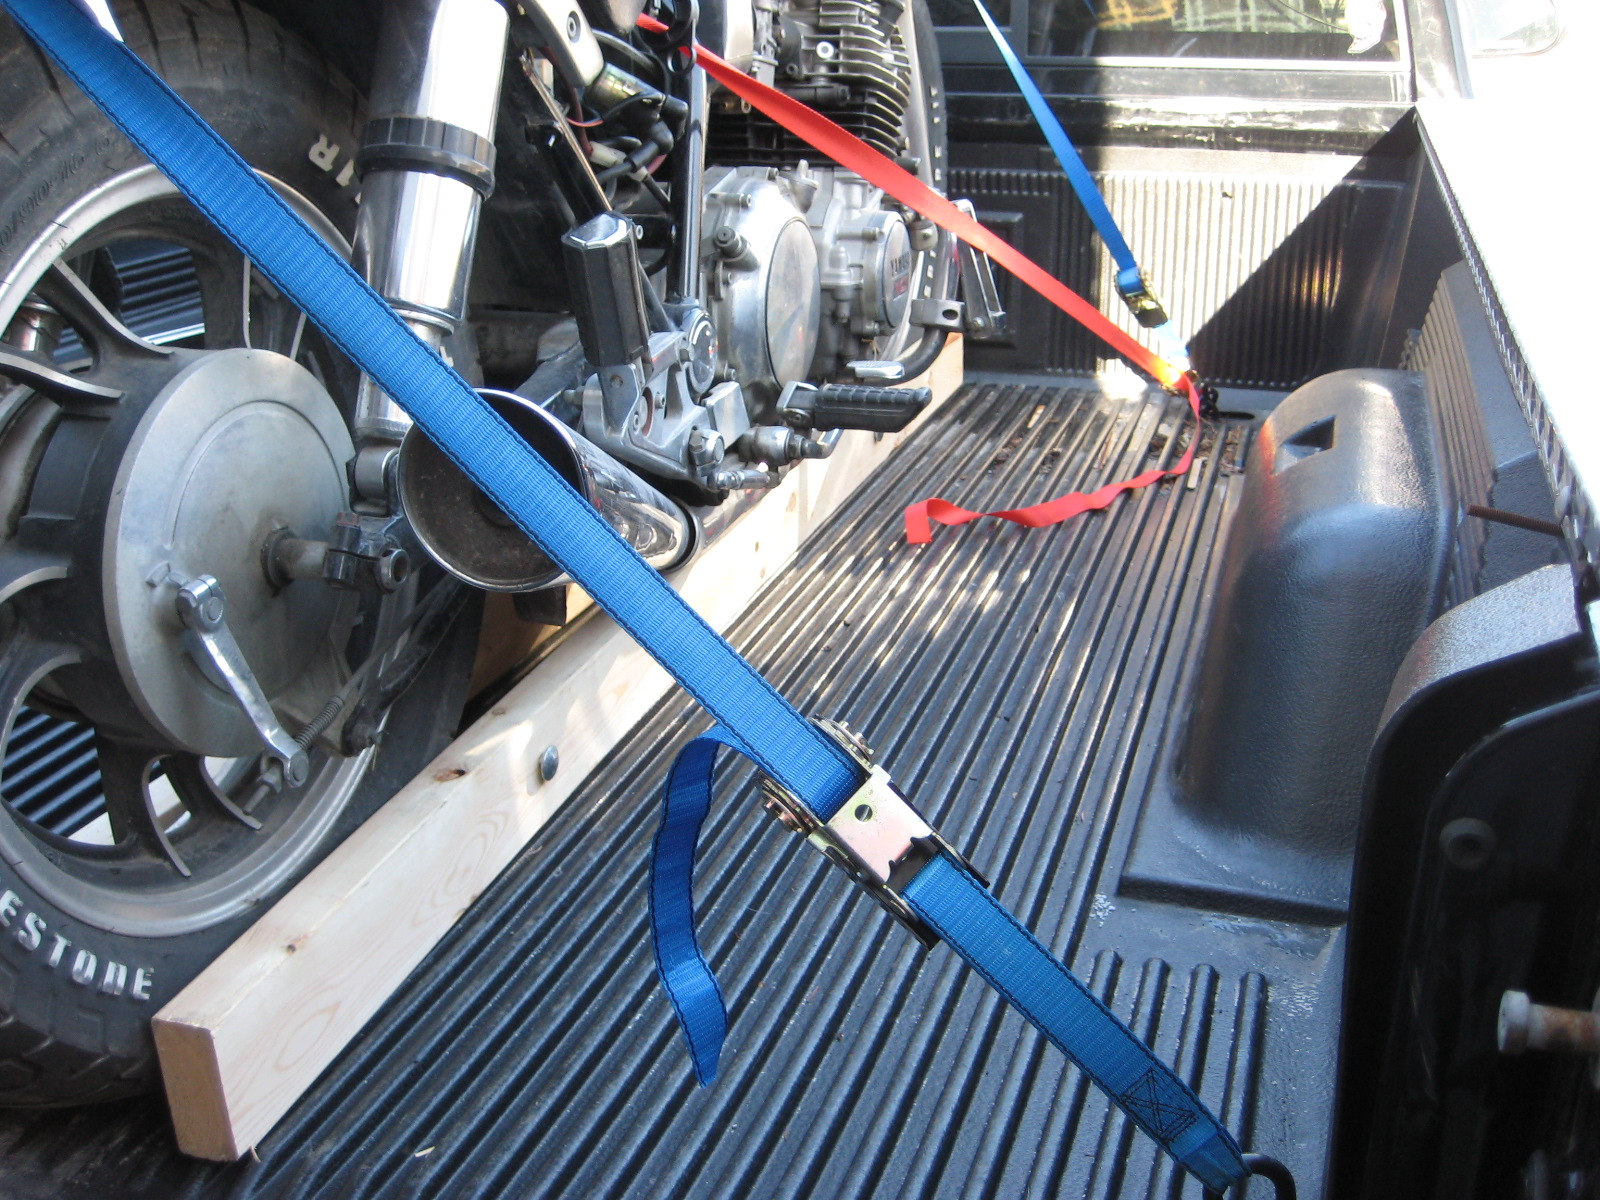 Motorcycle Tie Down For Truck Bed